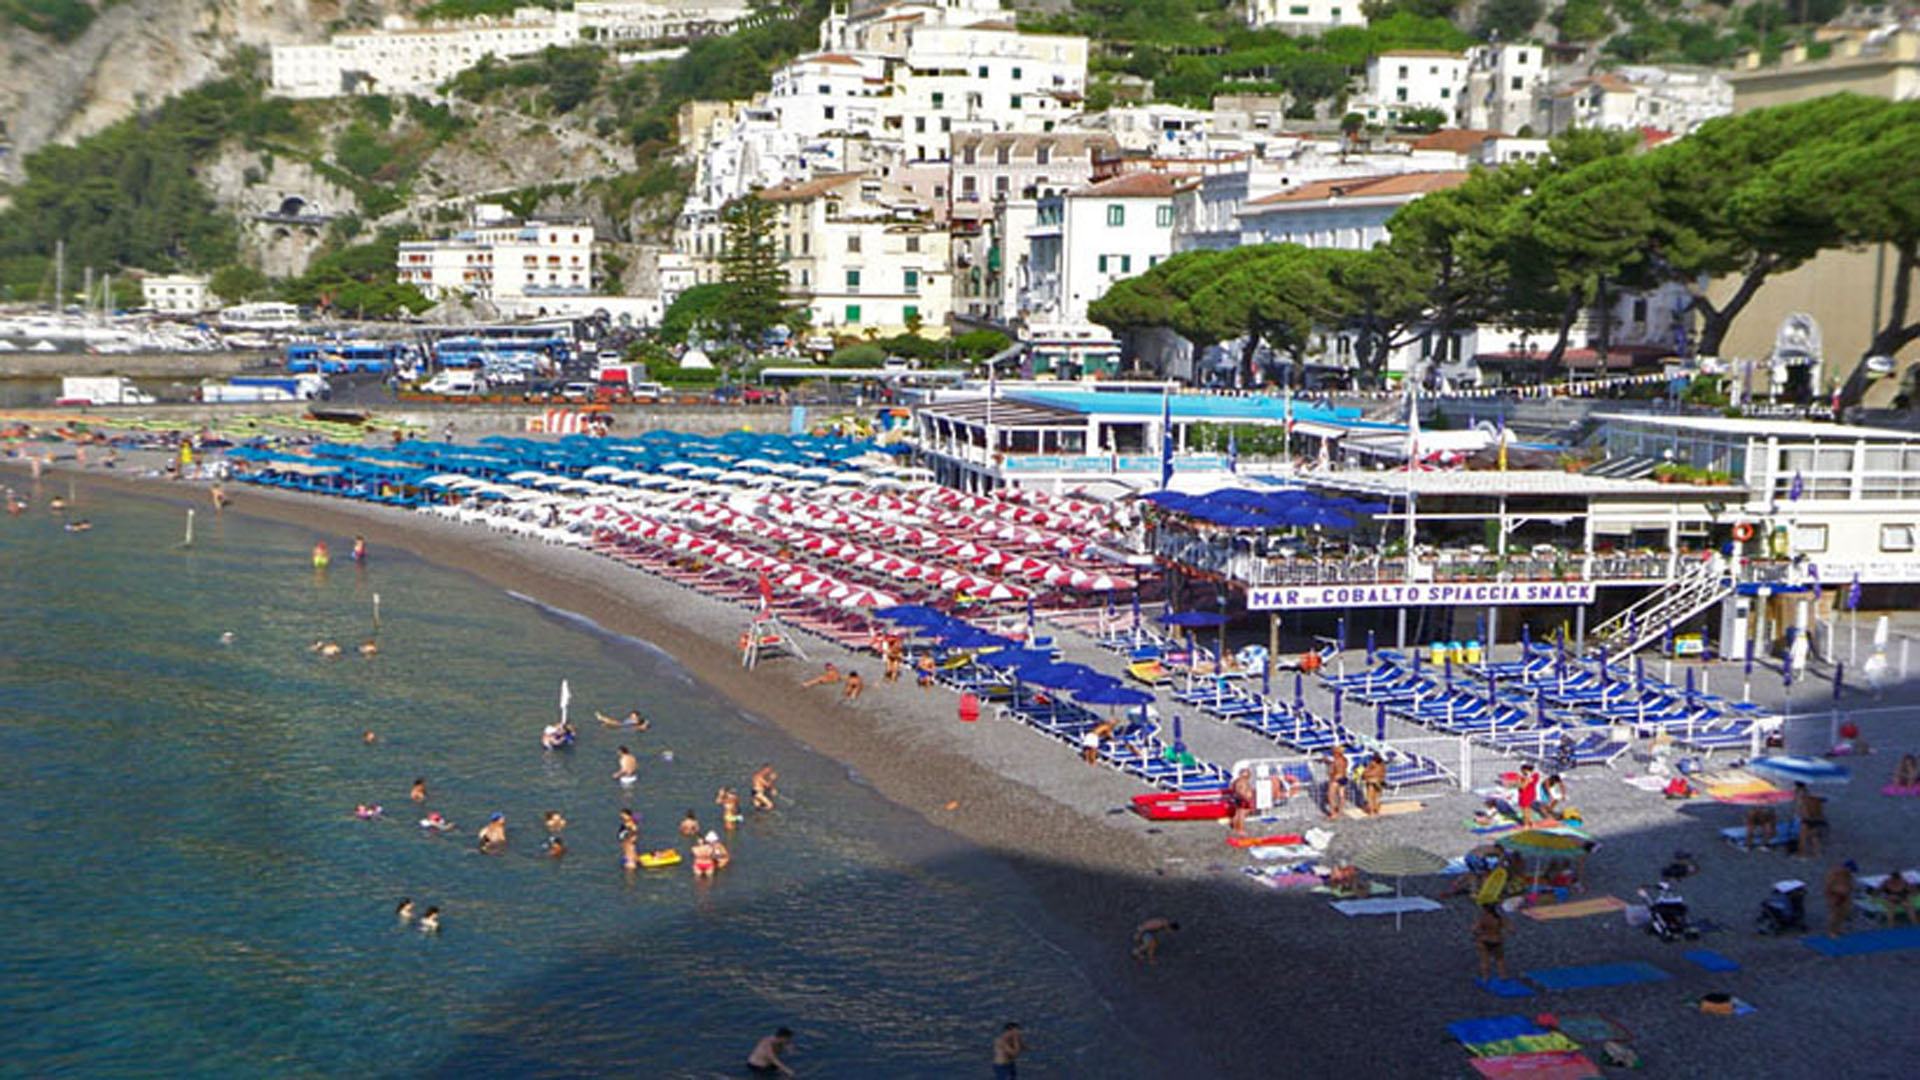 Amalfi center beach